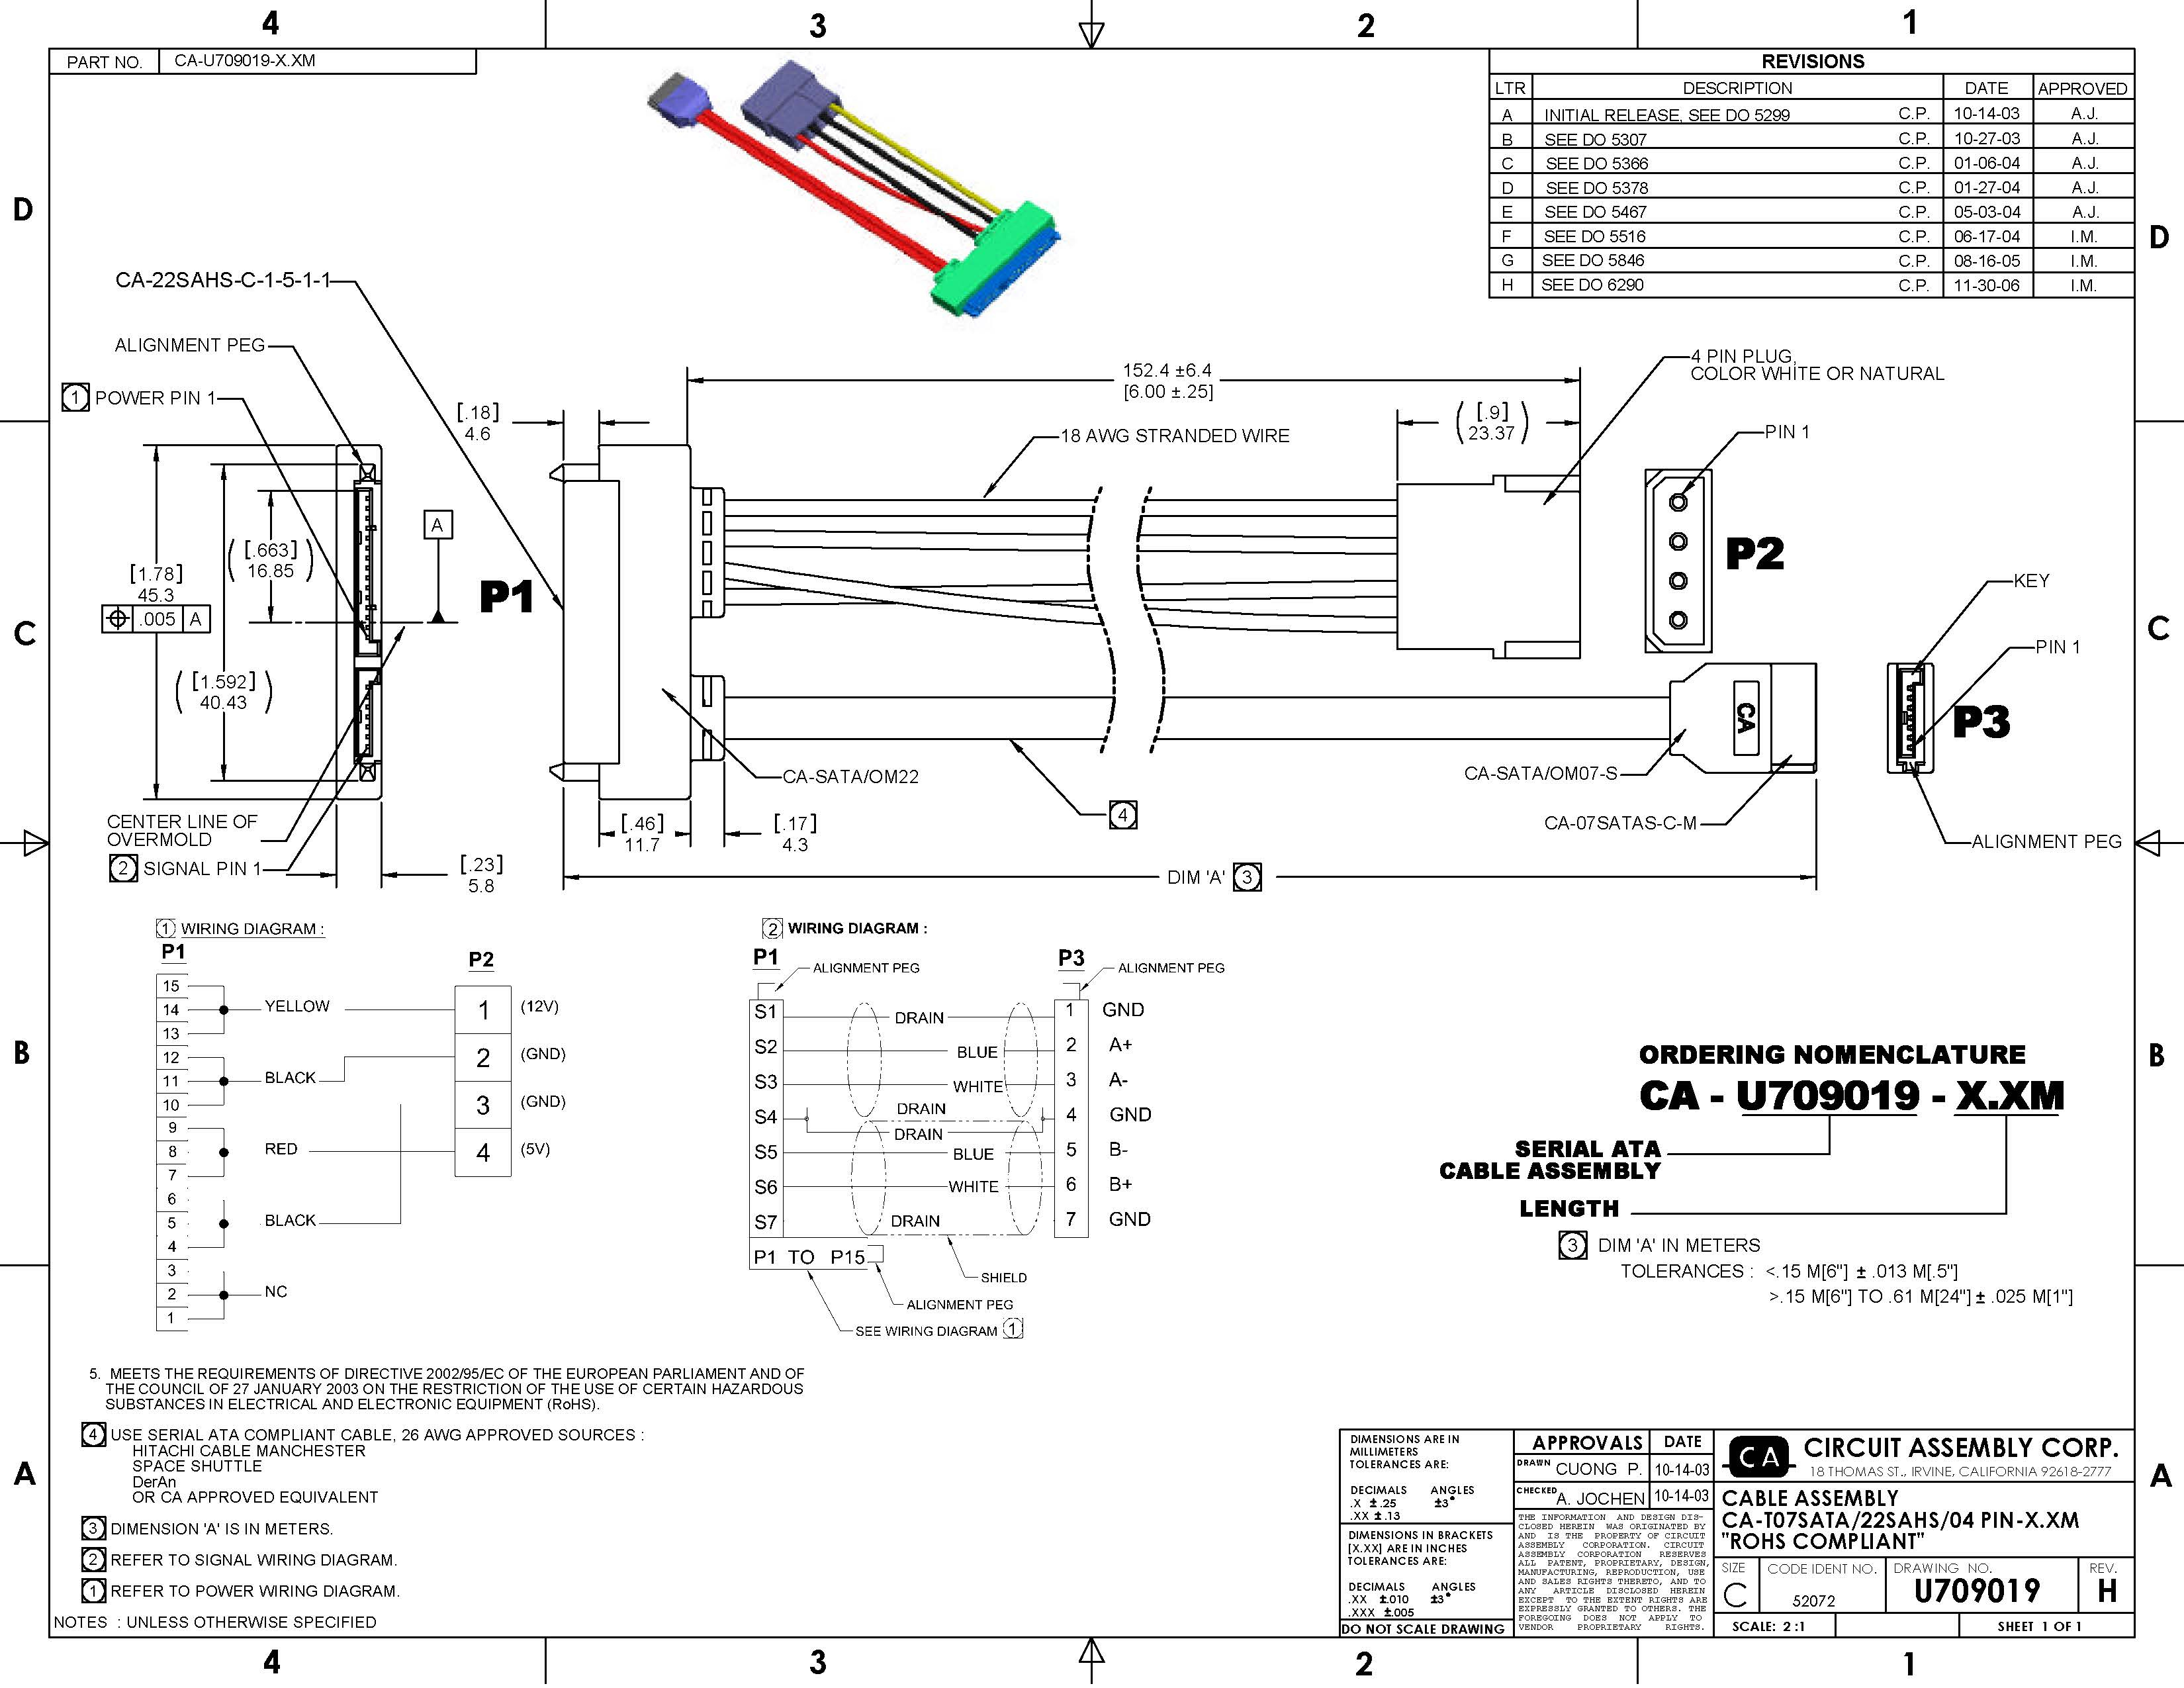 Esata Wiring Diagram | Wiring Diagram - What Is The Difference Between A Usb And An Esata Wiring Diagram